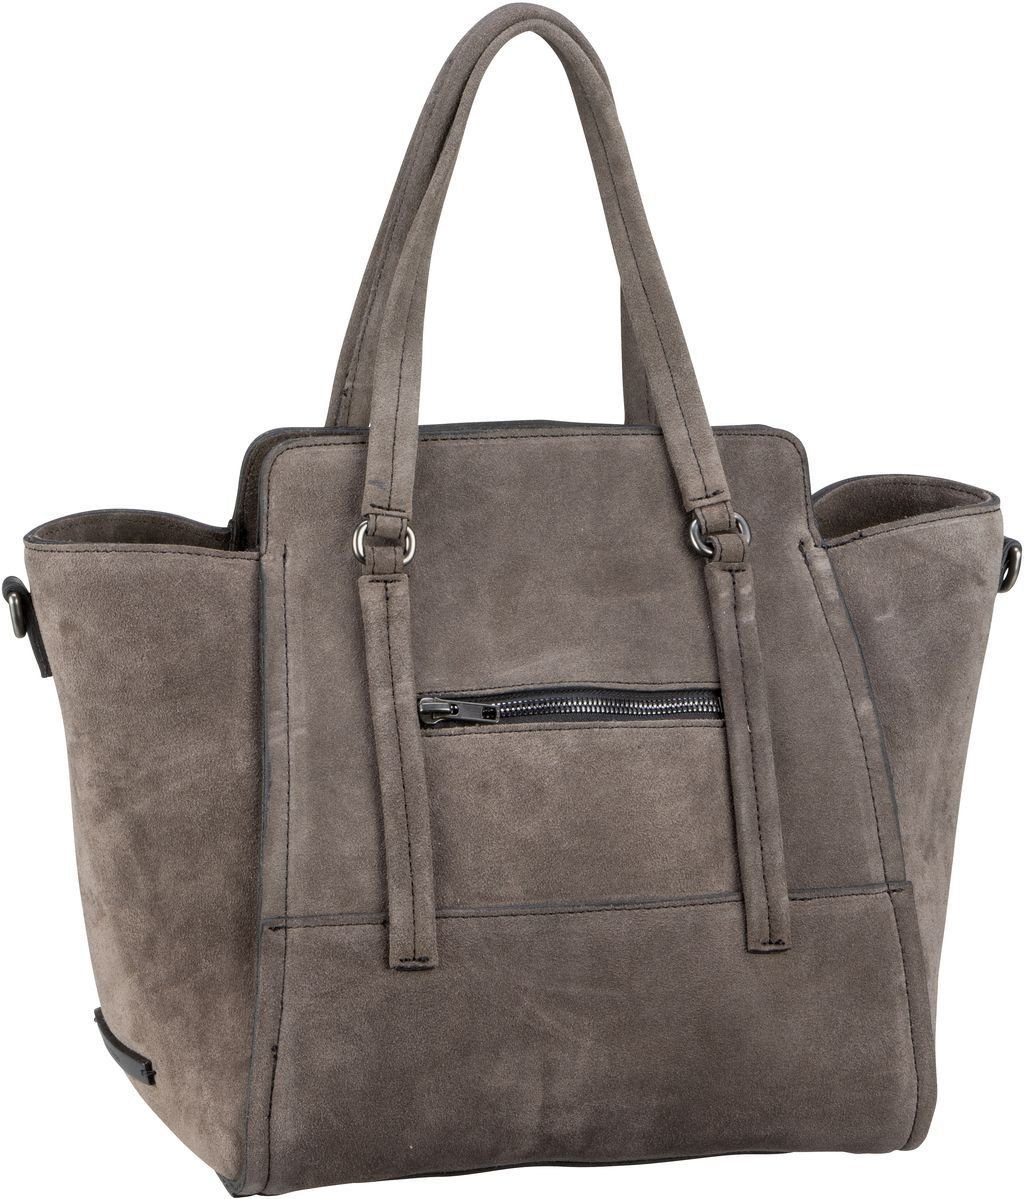 Marc O'Polo Handtasche »Fortyone Luxury Suede«